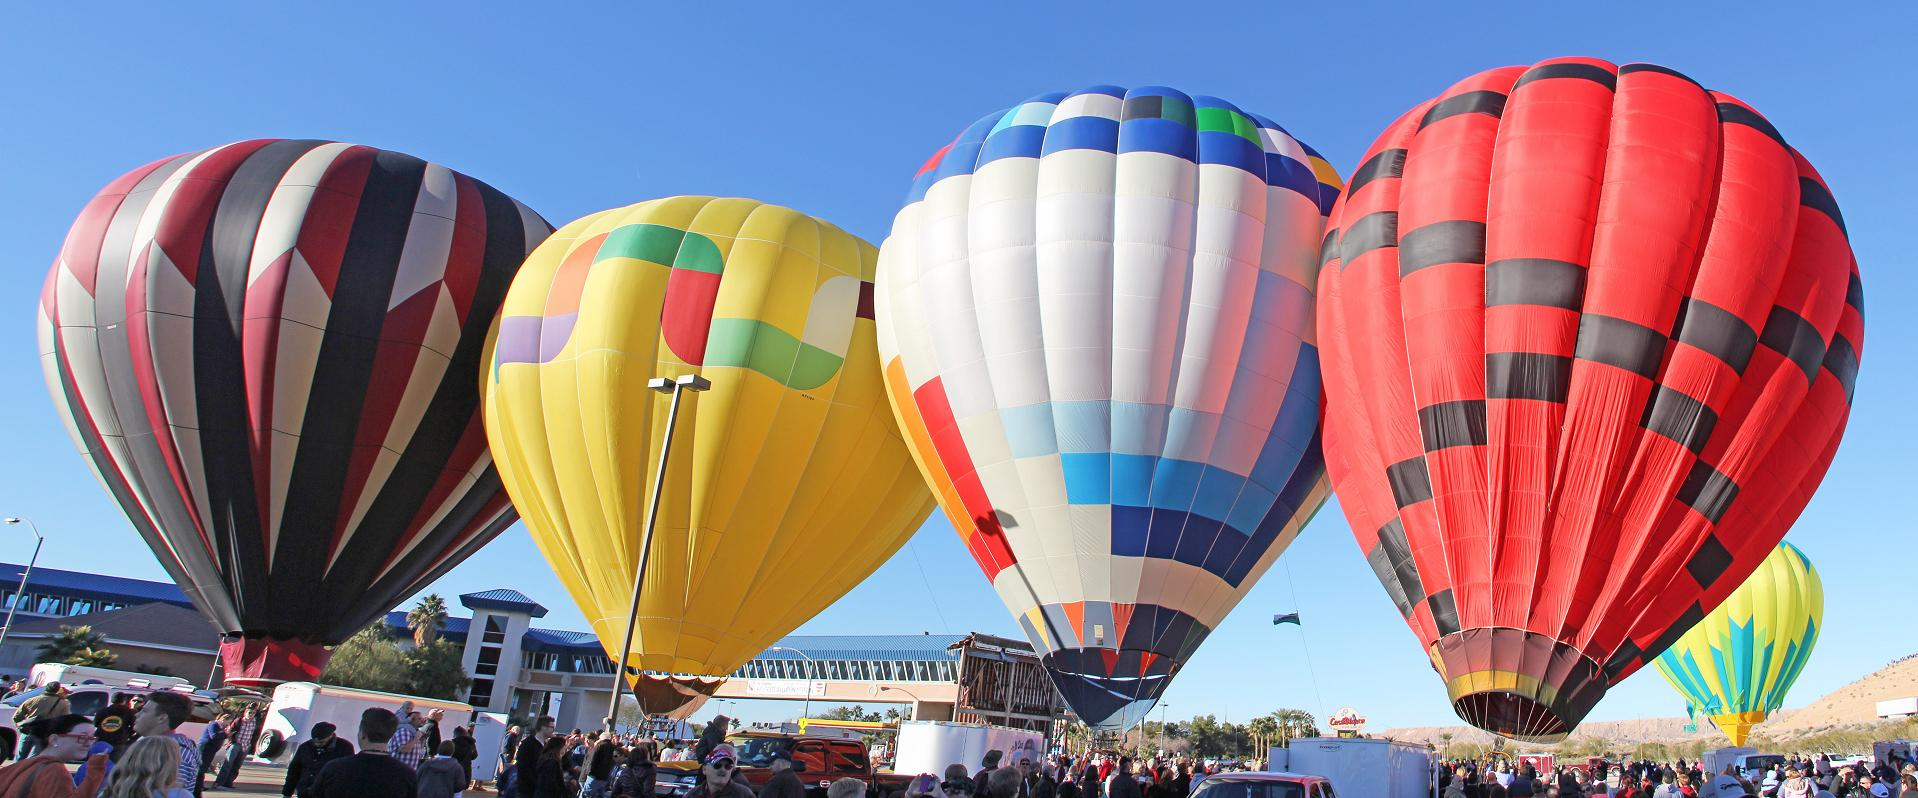 Hot Air Balloon Festival hampered by wind